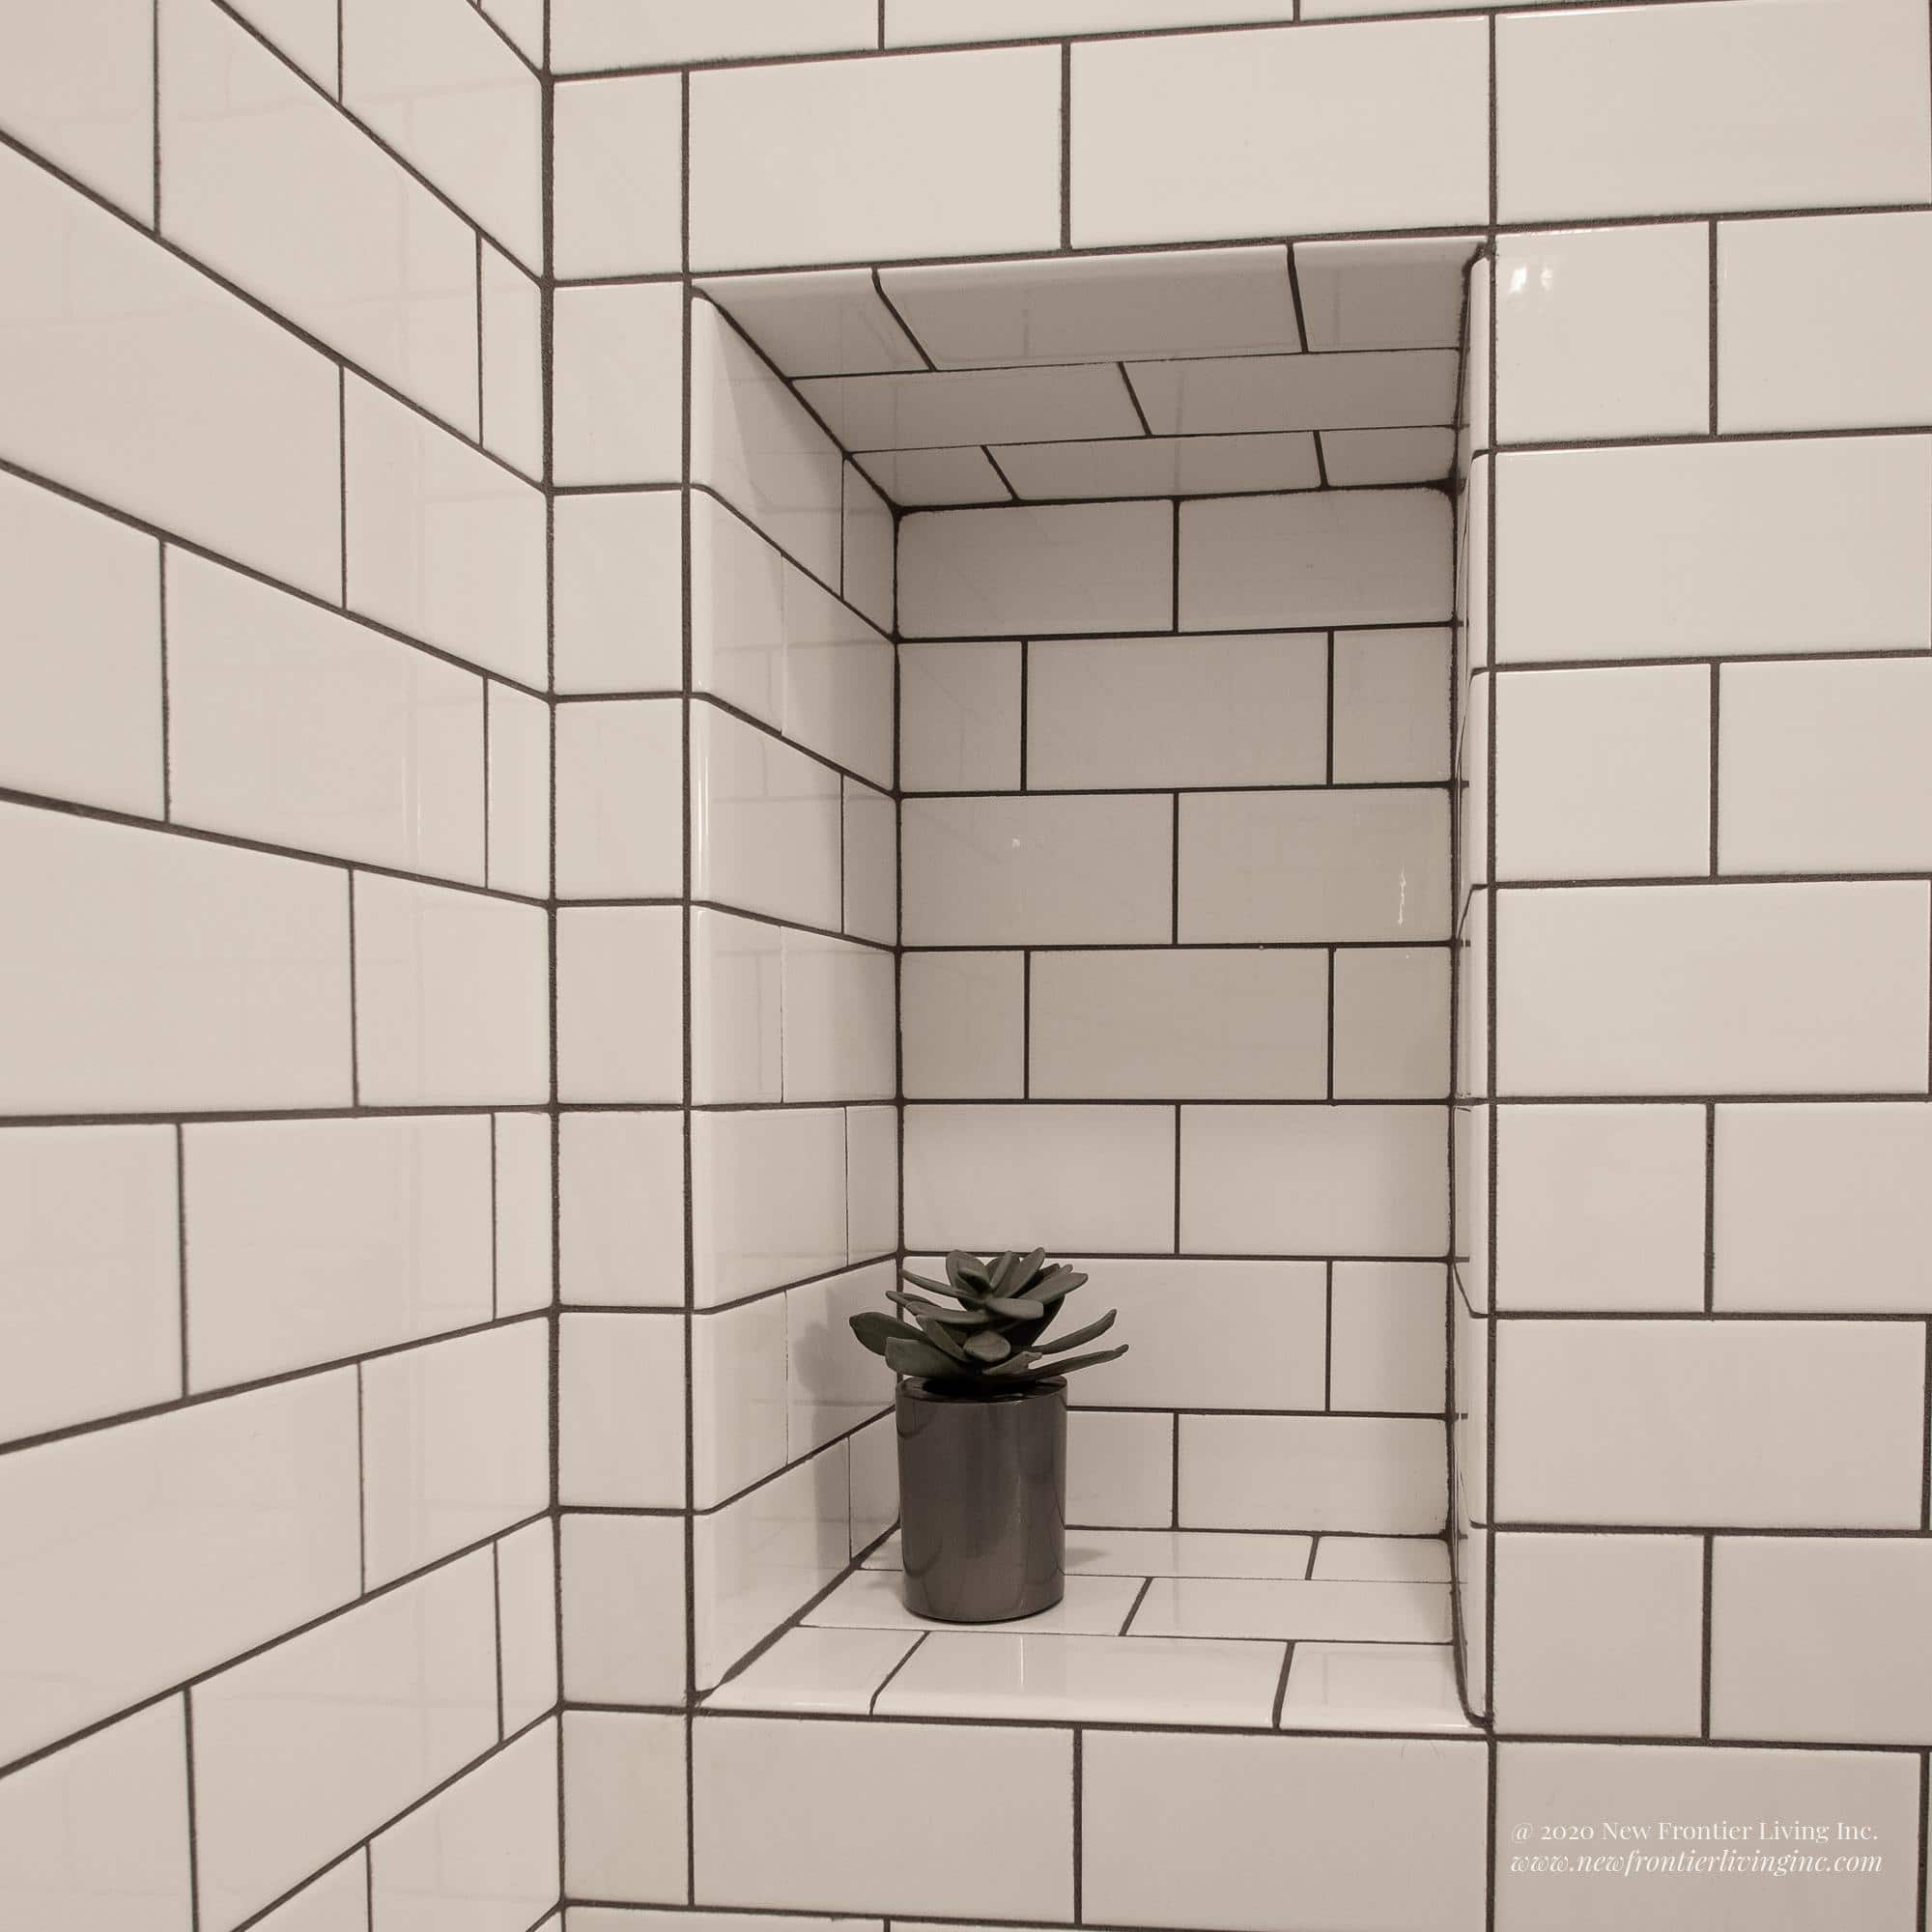 Traditional white ceramic bathroom built-in shelve in the wall with flower